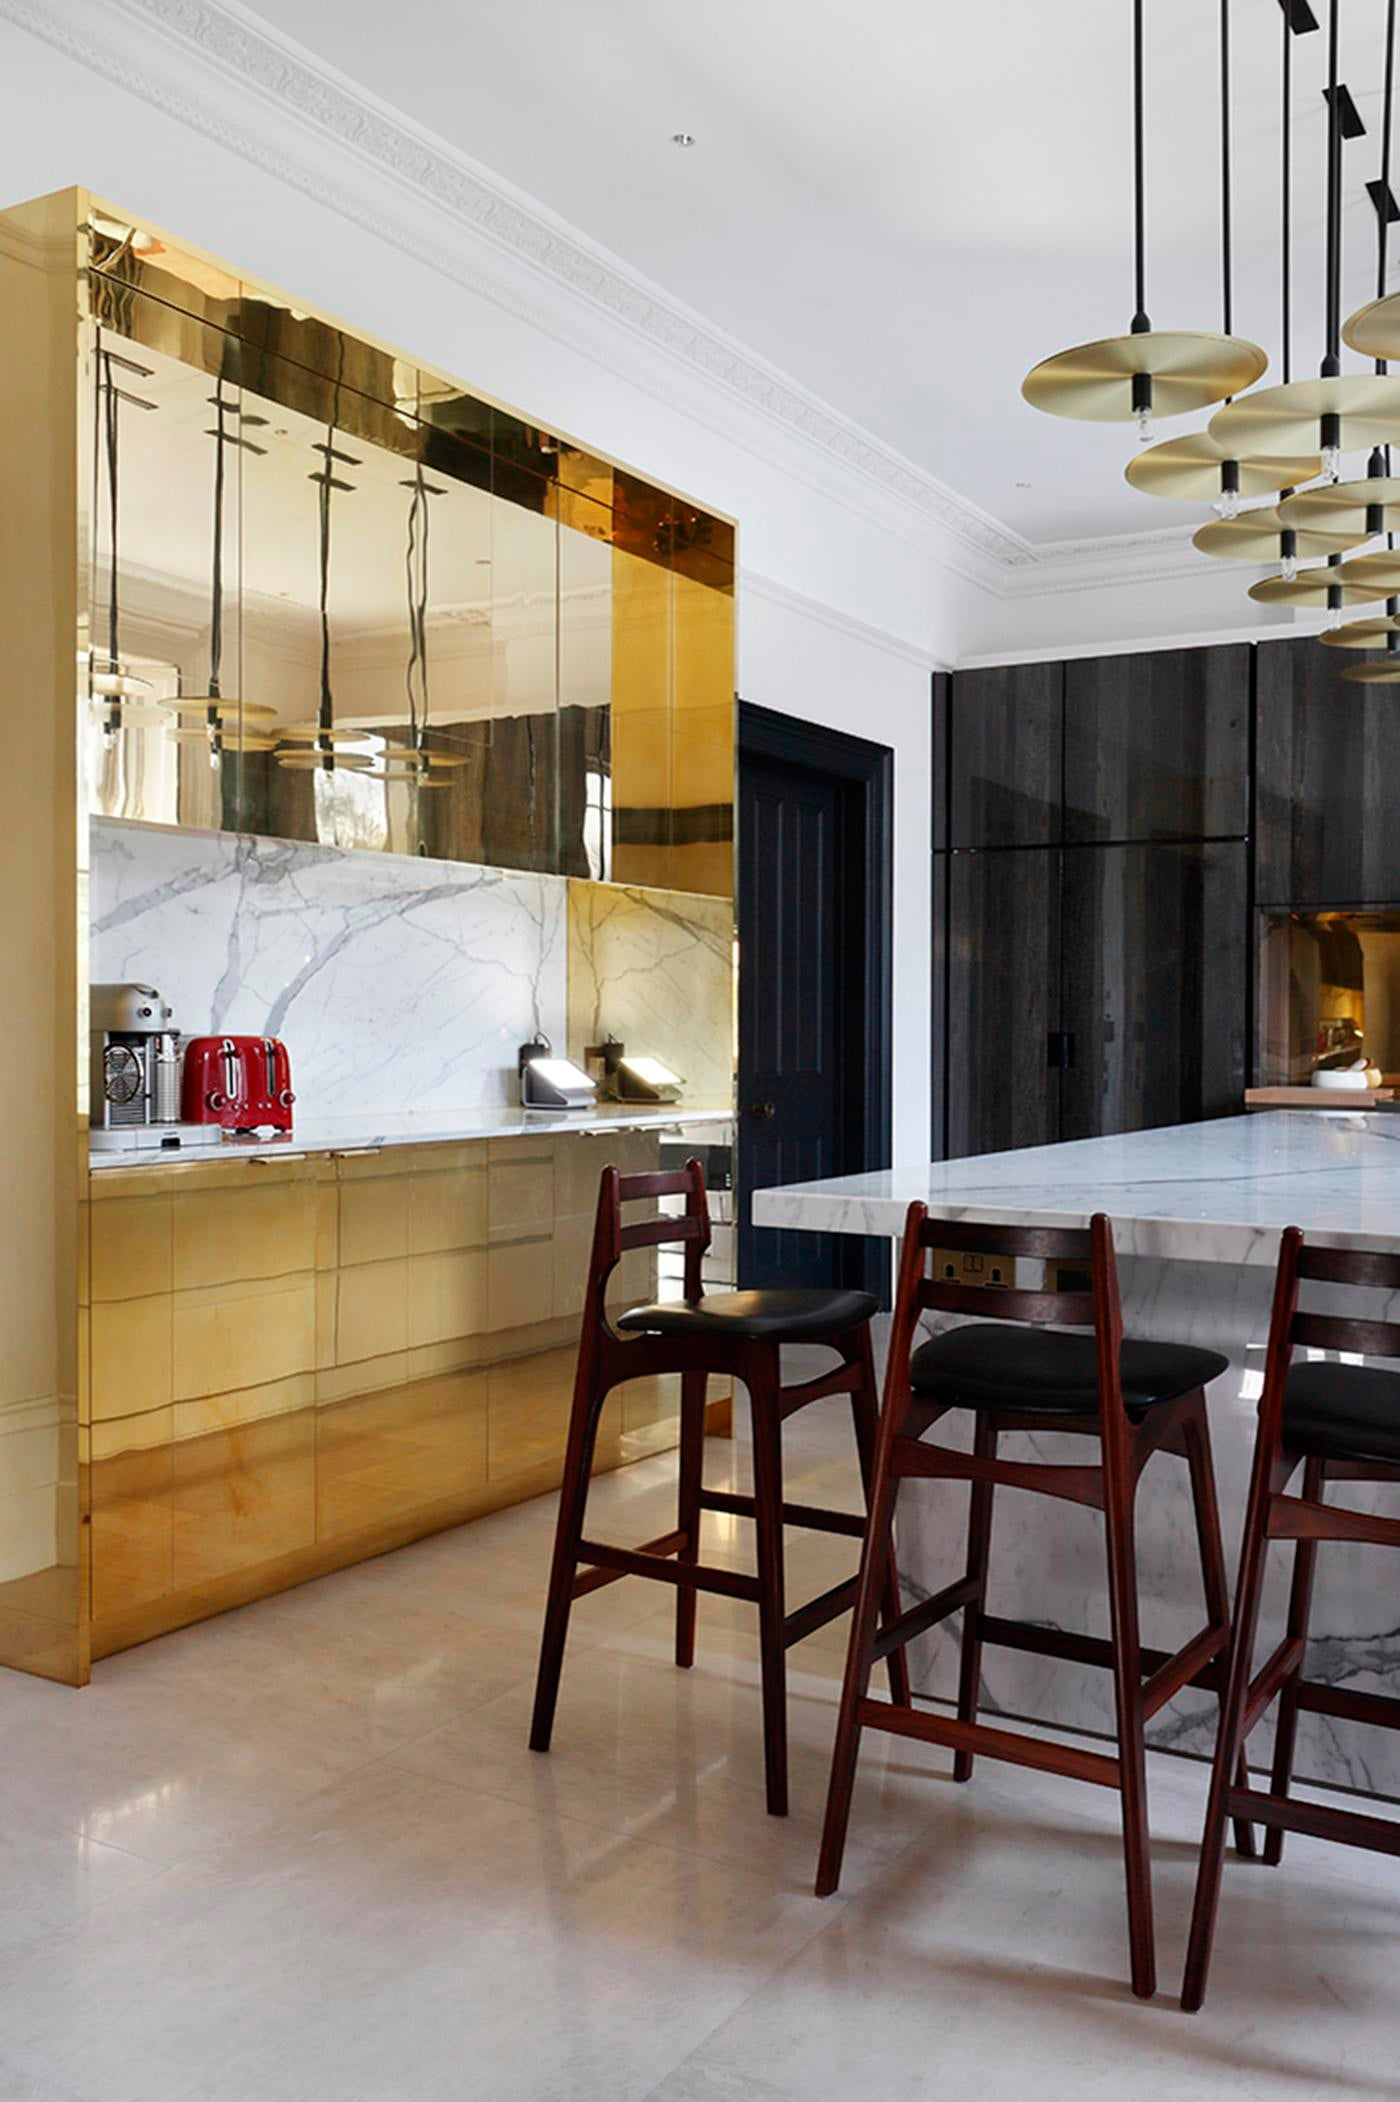 Kitchen Area Using Warm Finishes   Polished Brass Creates A Dramatic Feel.